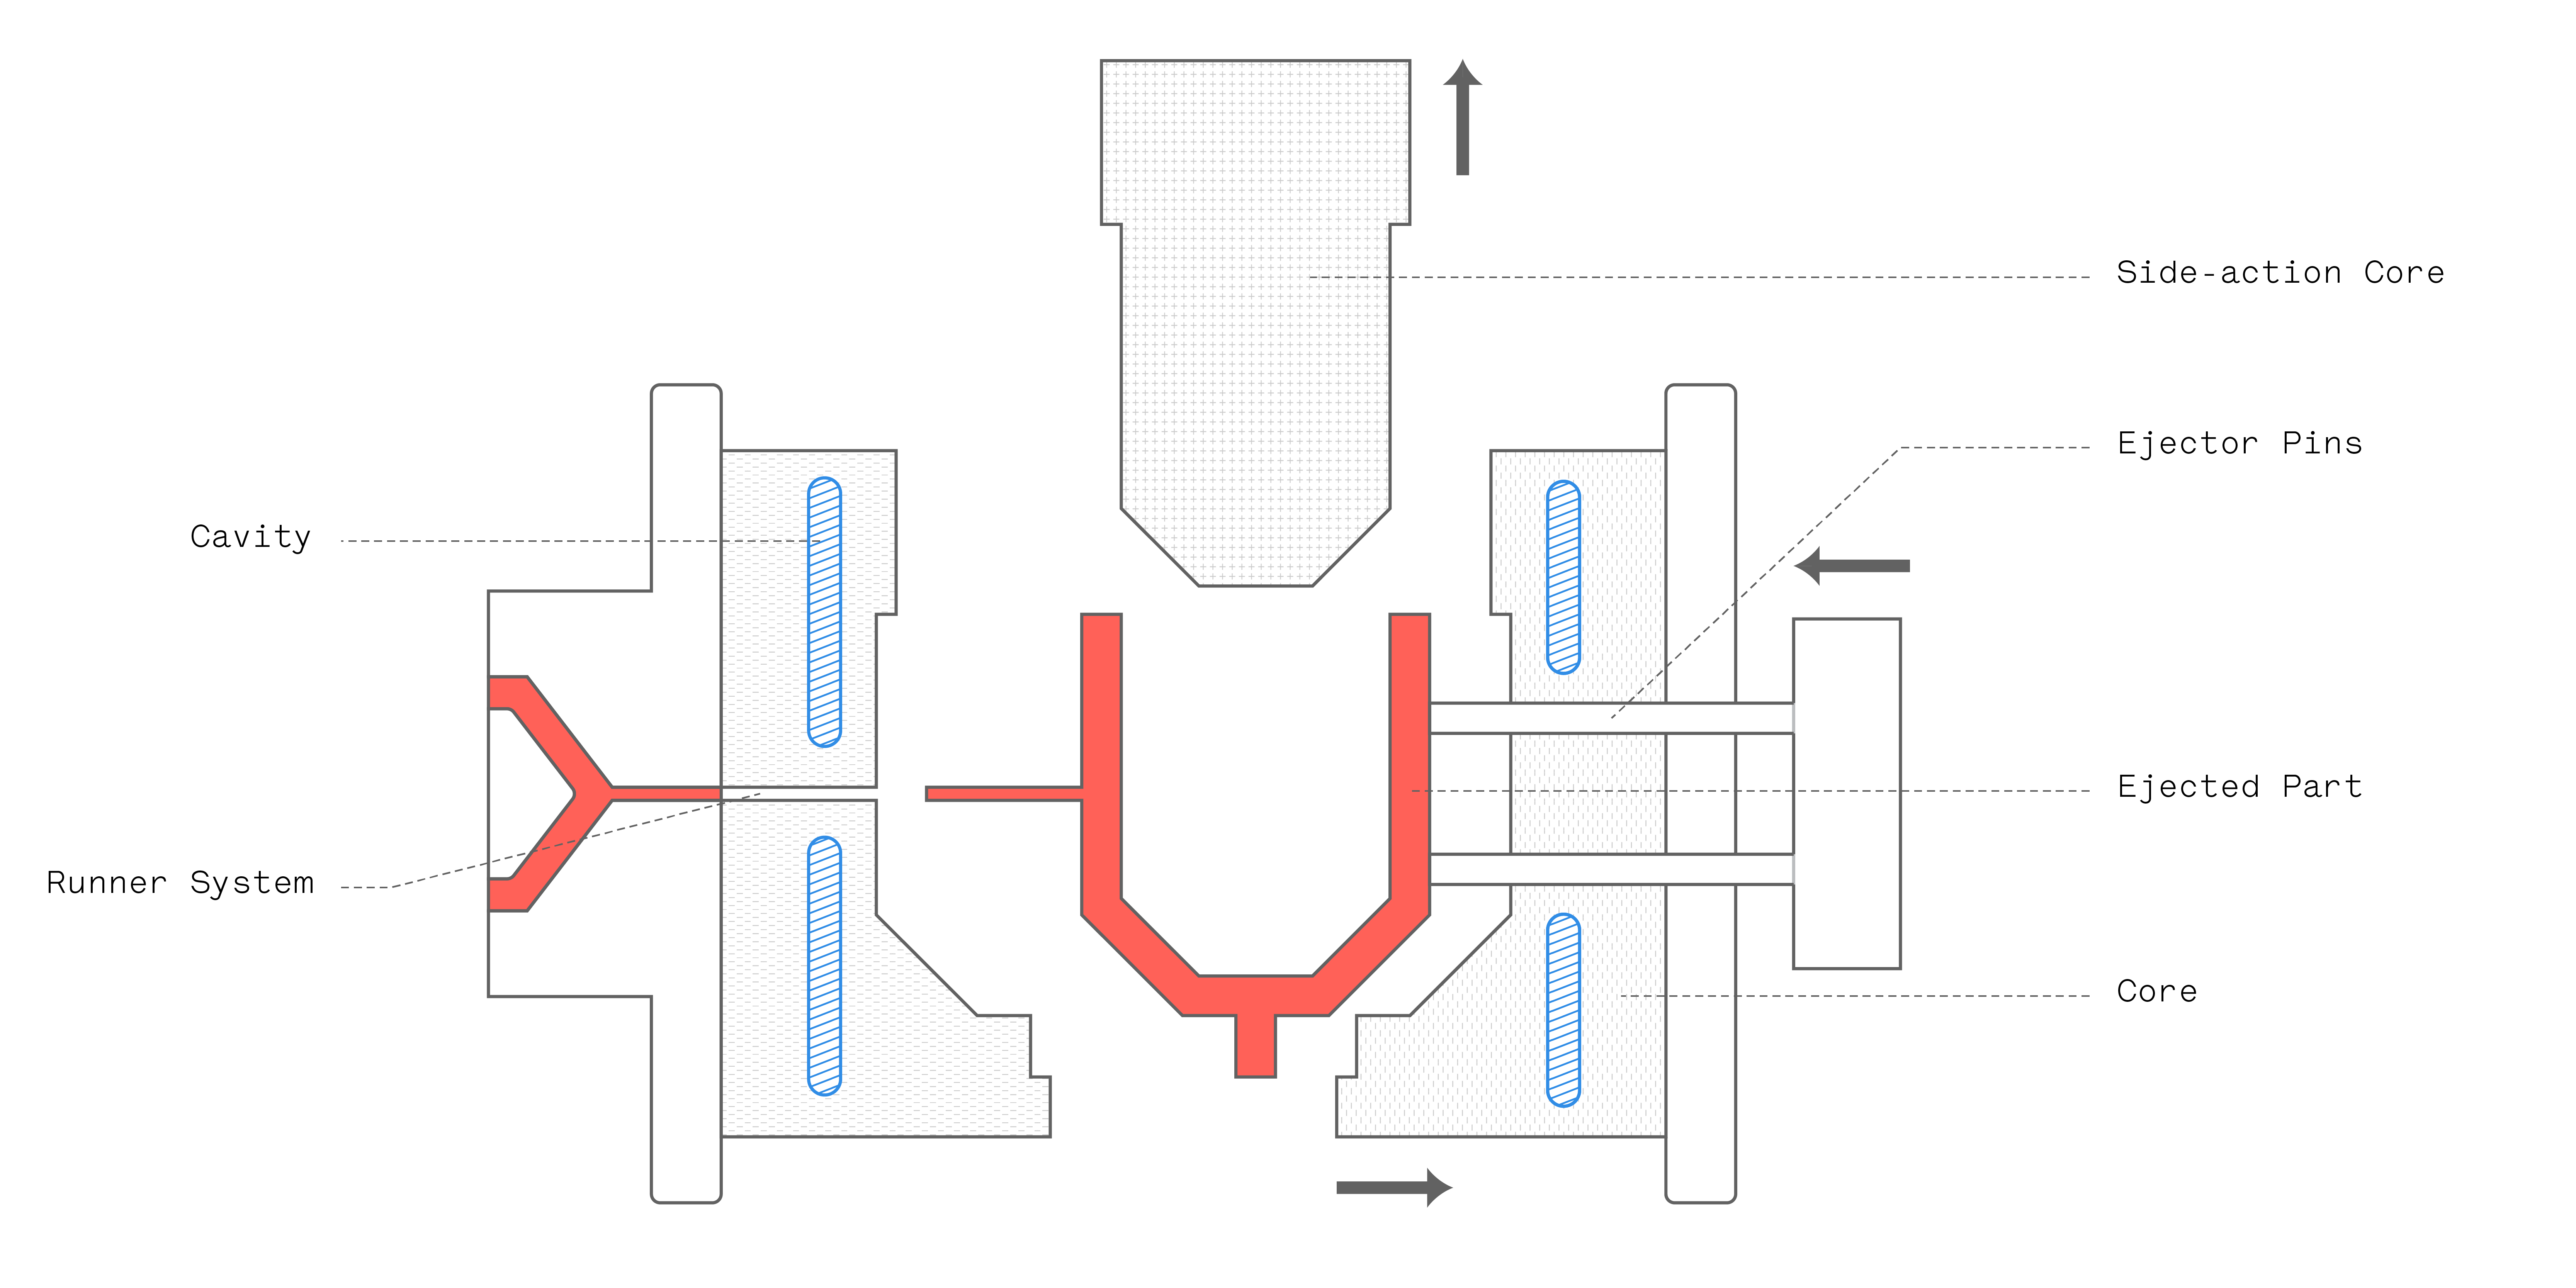 Schematic Of A Mold With Side Action Cores During Part